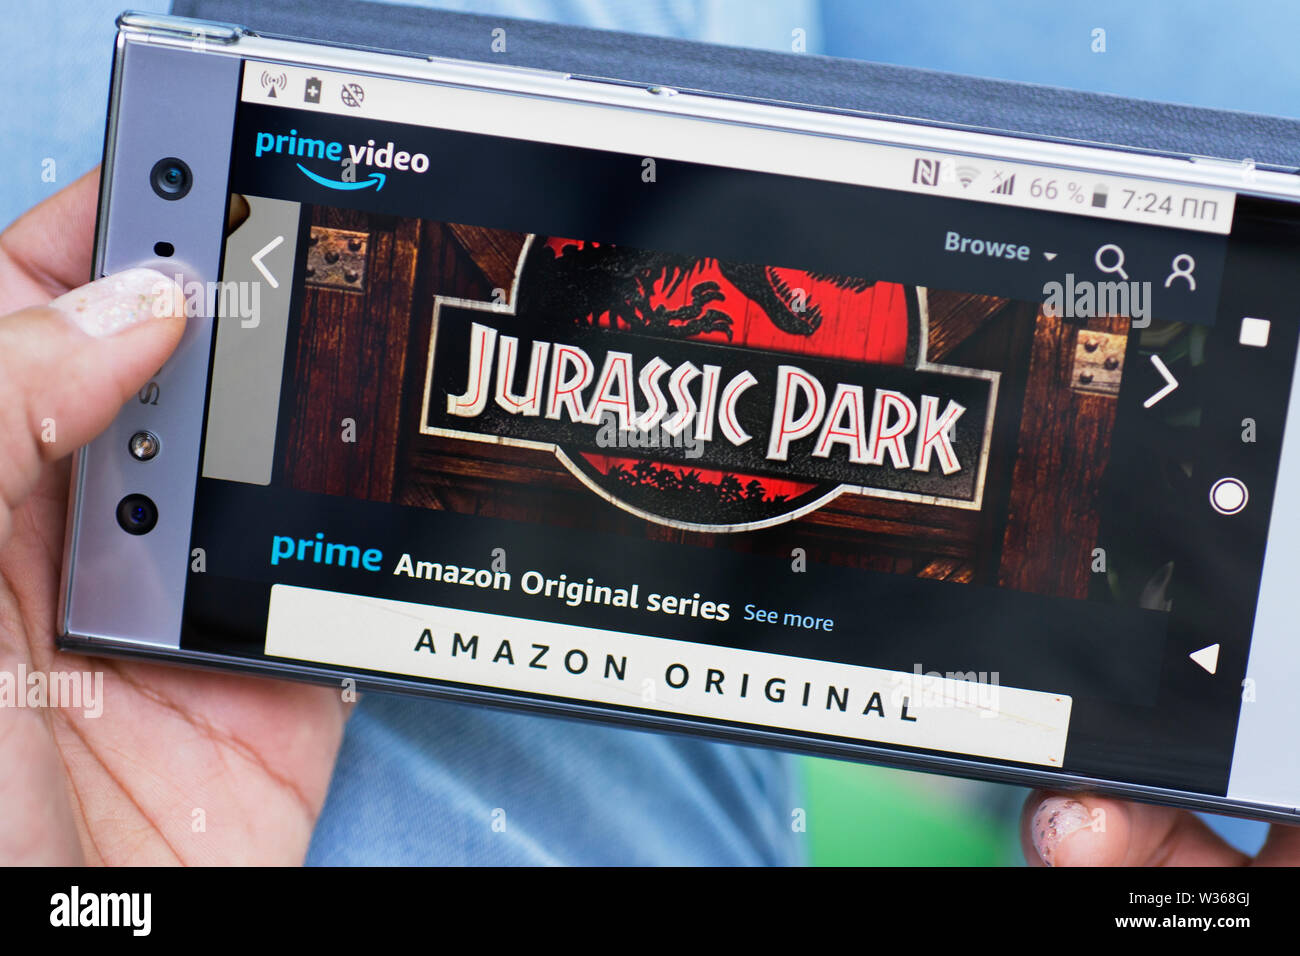 Amazon Prime Video, Prime Amazon Original Series, Jurassic Park Movie streaming website on Smartphone Mobile Phone screen Stock Photo